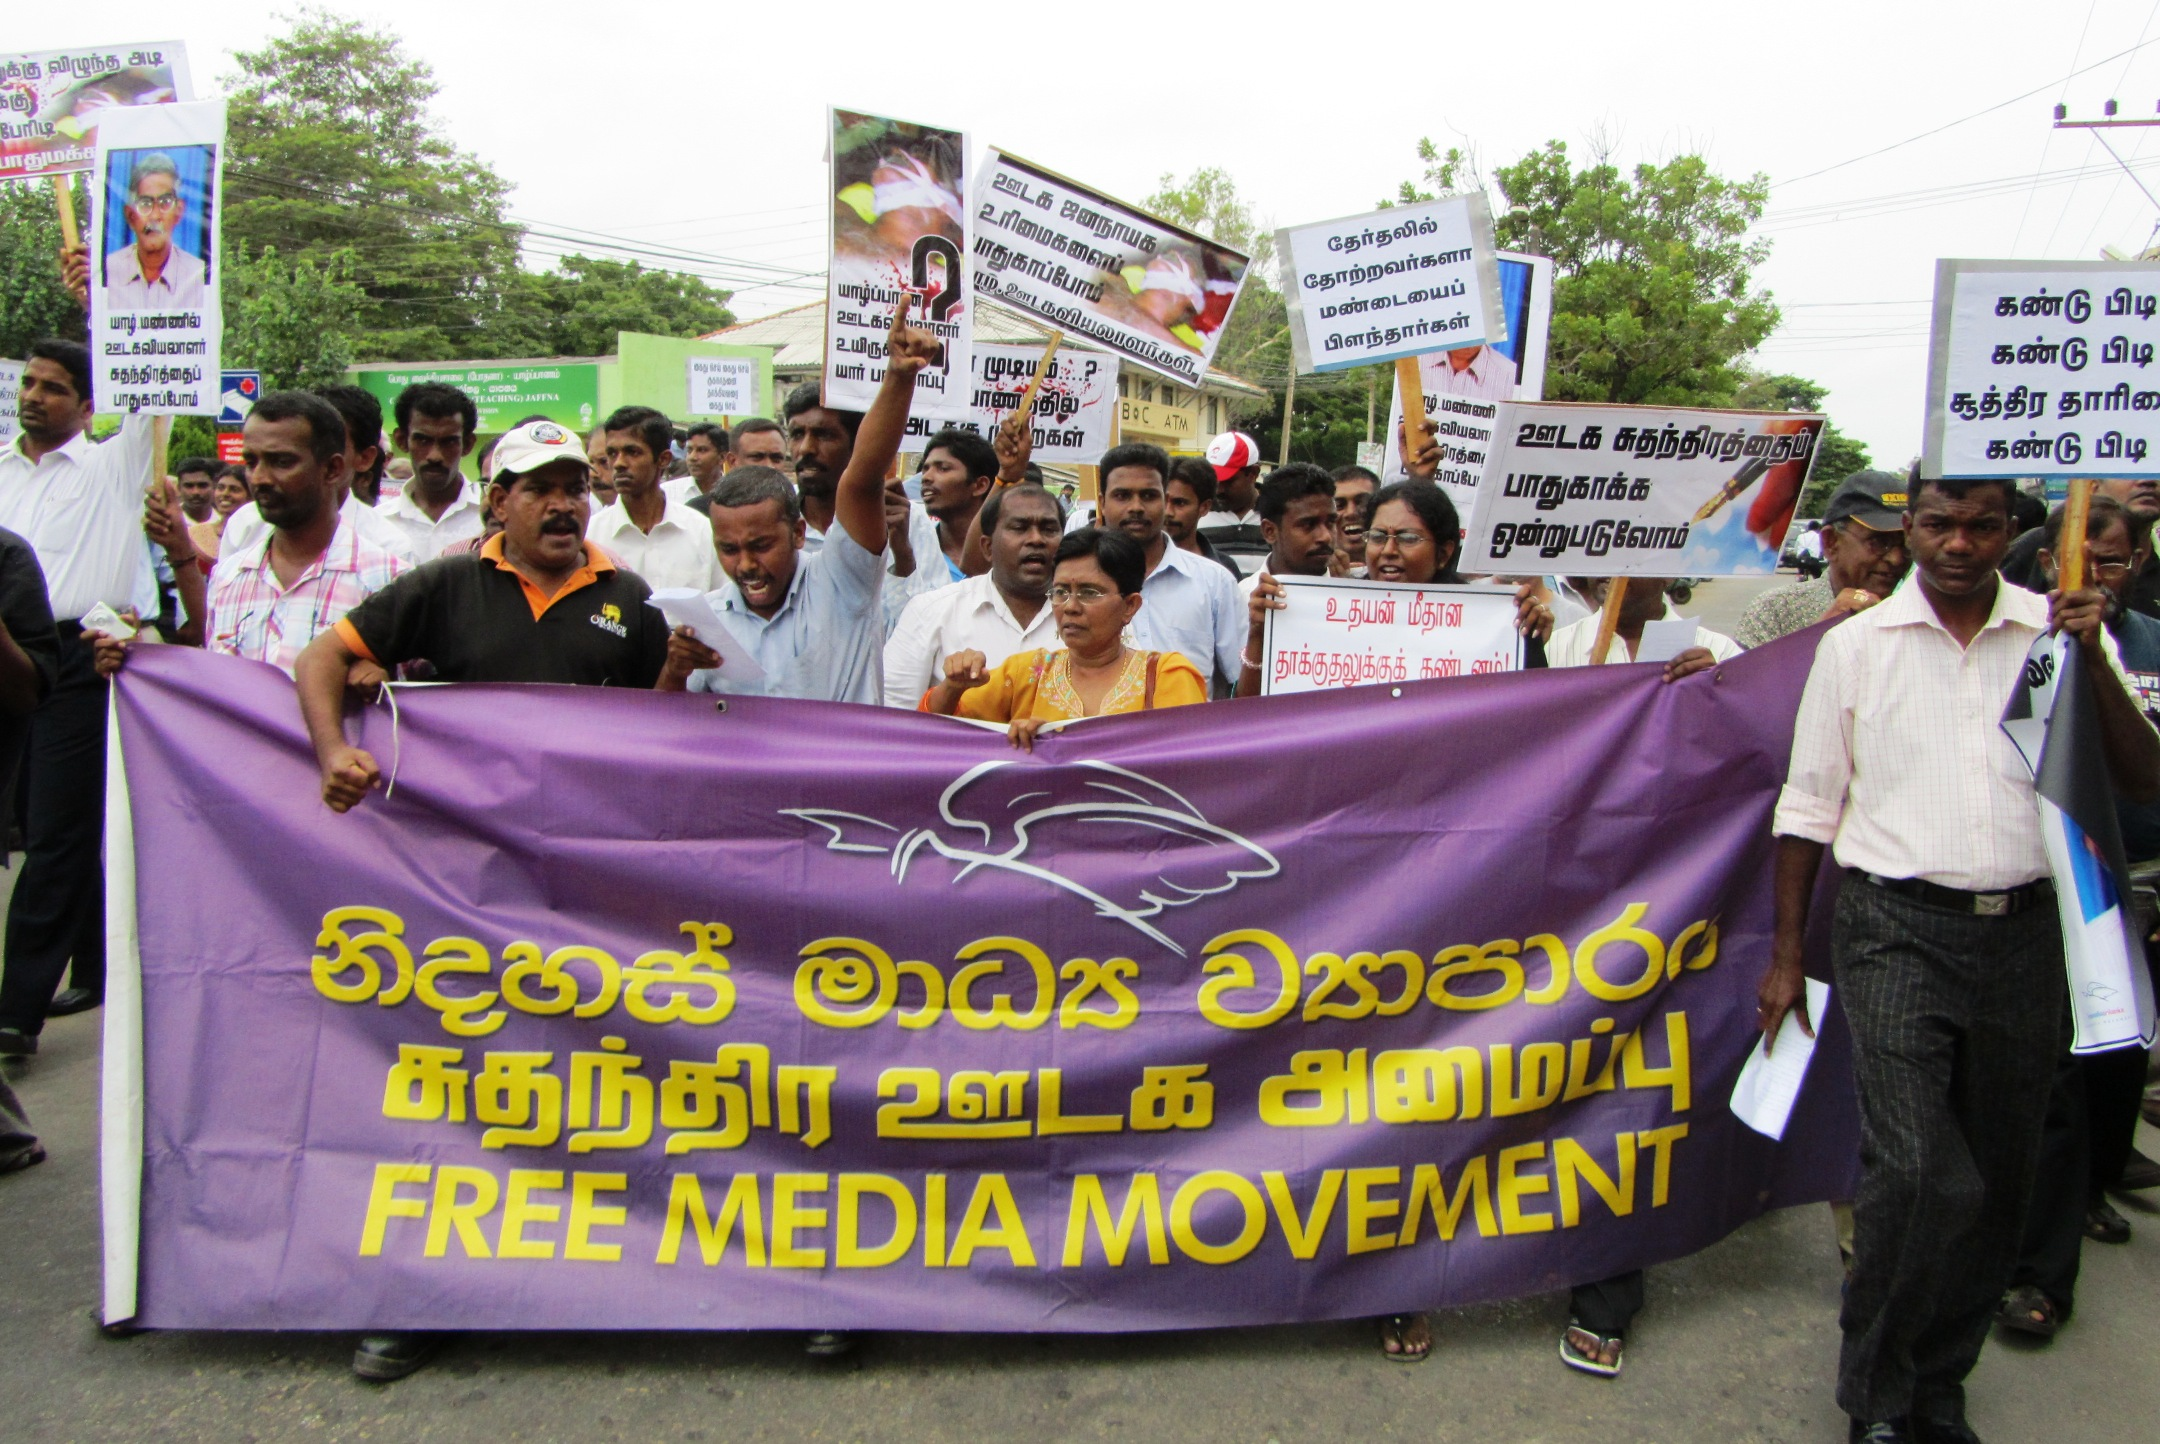 Right to Association: FMM campaigns in Jaffna